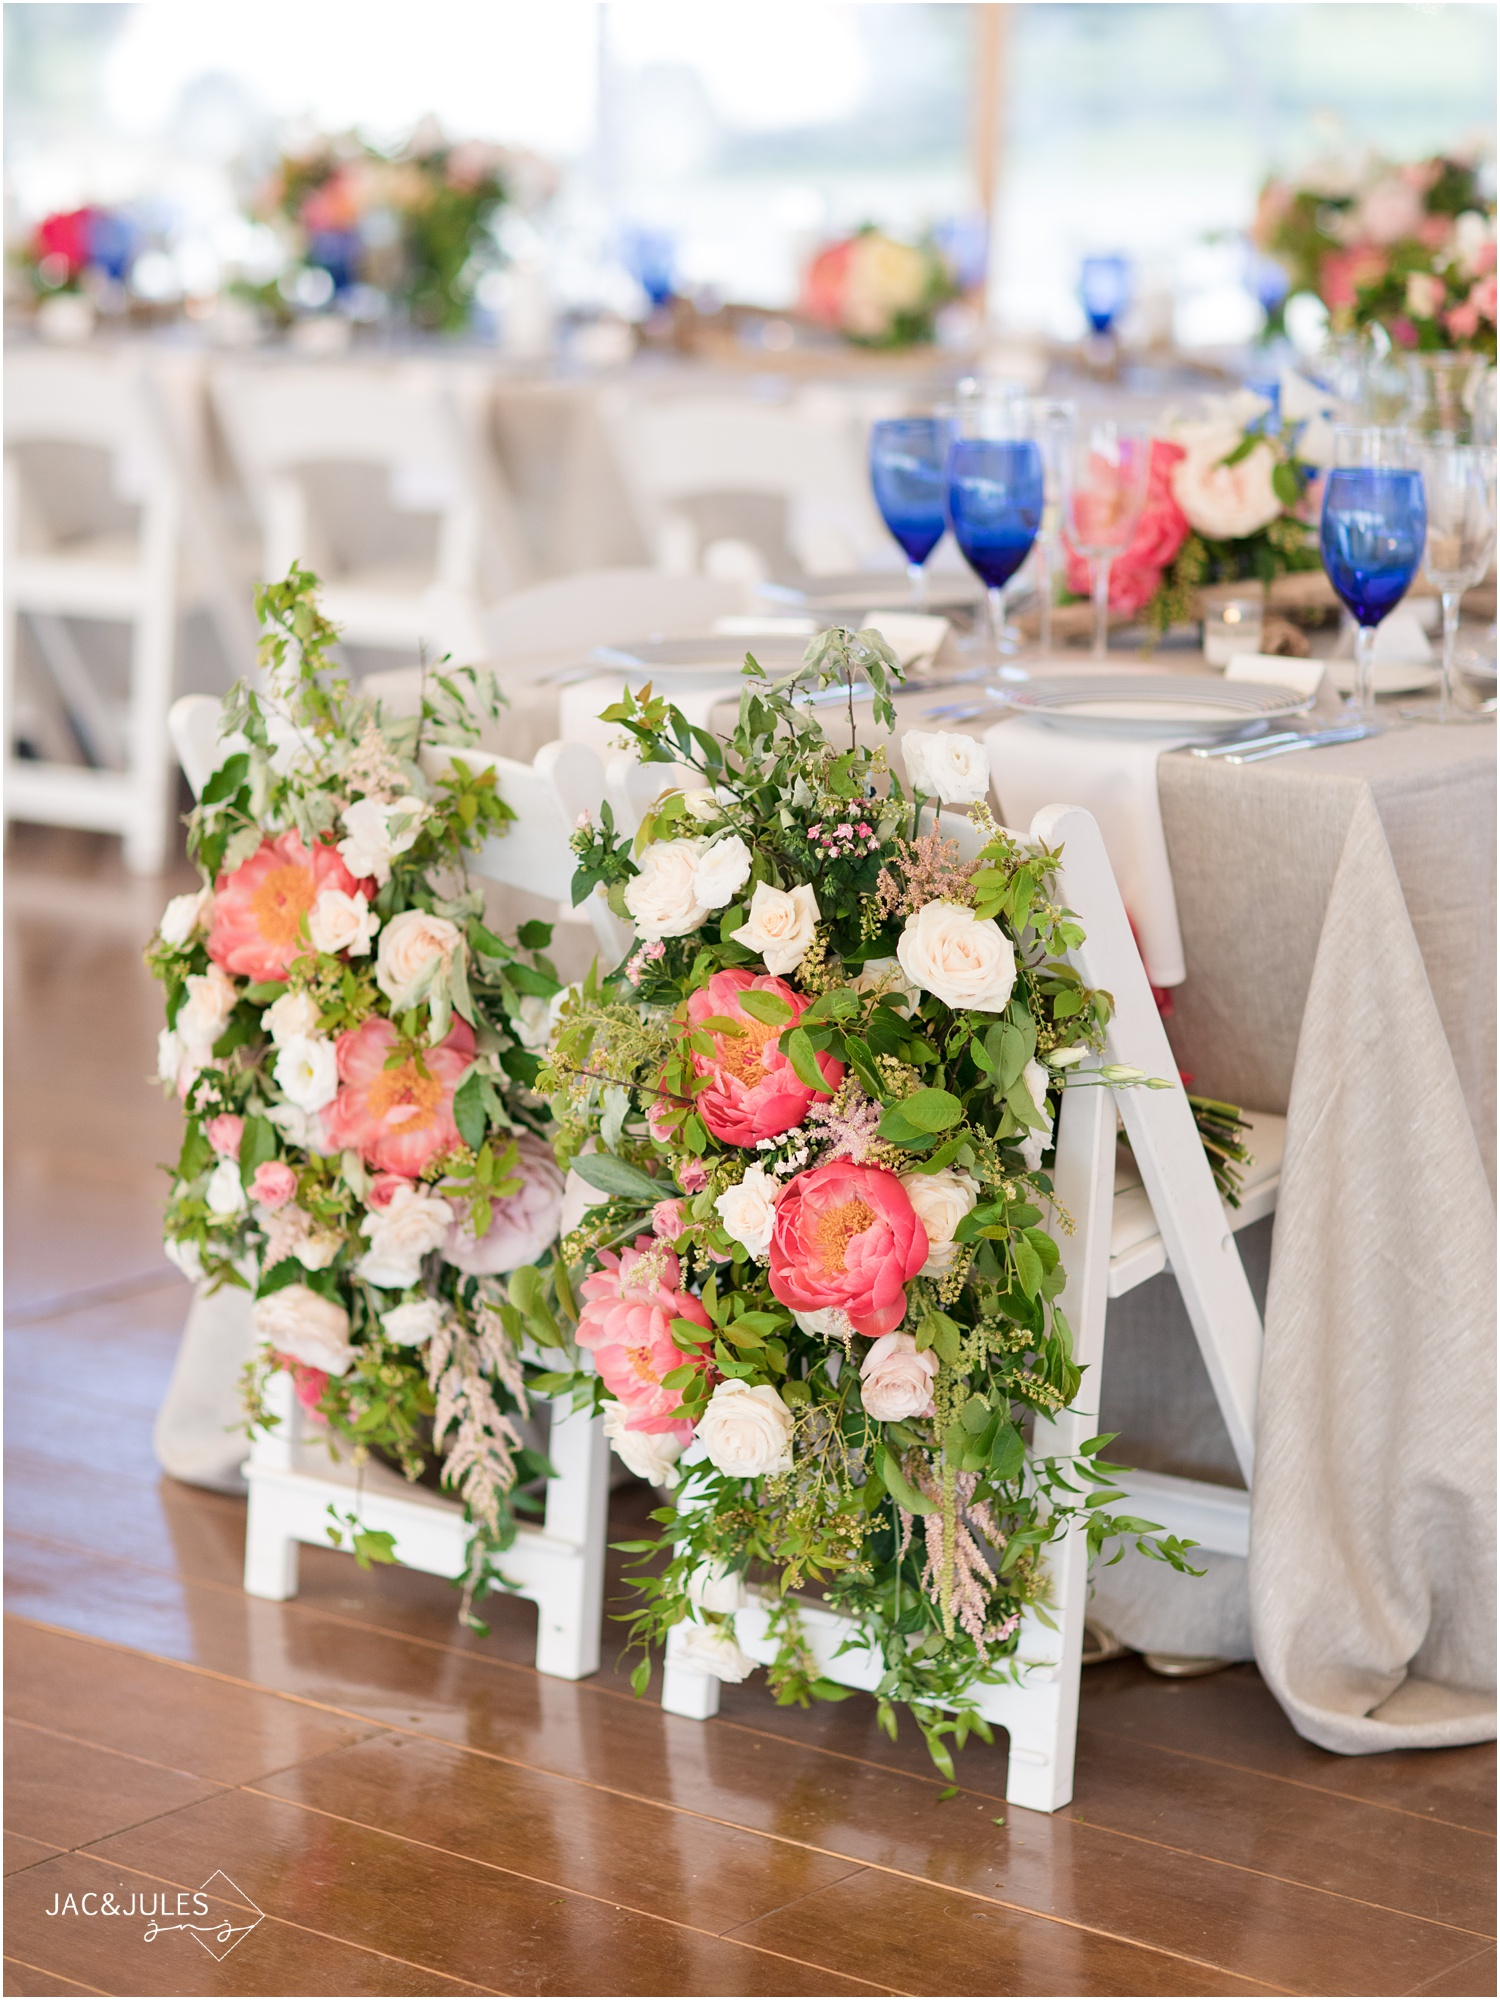 floral chair back decor by Faye and Renee in Mantoloking, NJ wedding.